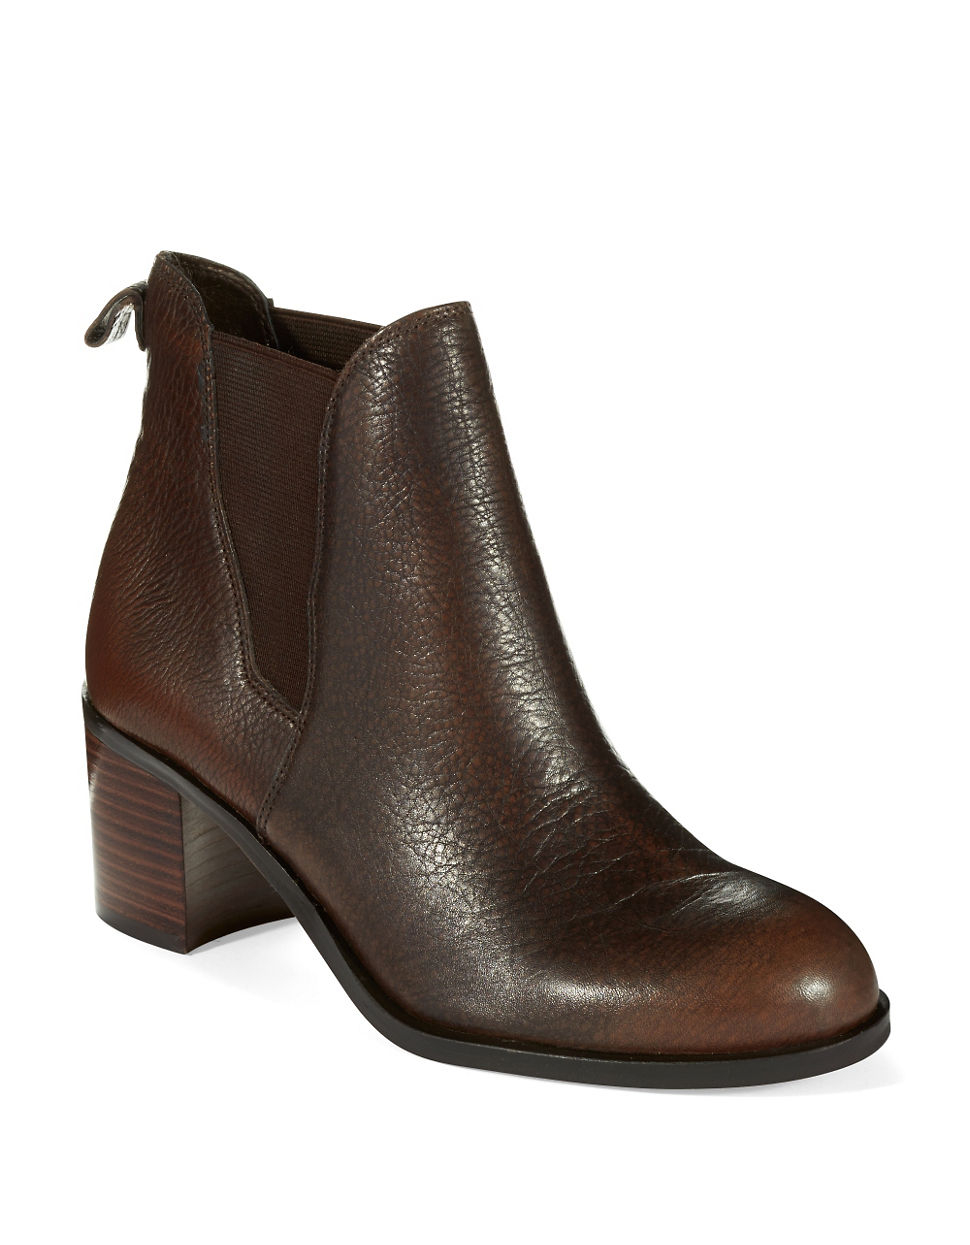 Sam Edelman Justin Short Leather Boots in Brown - Lyst 9a1aa4085